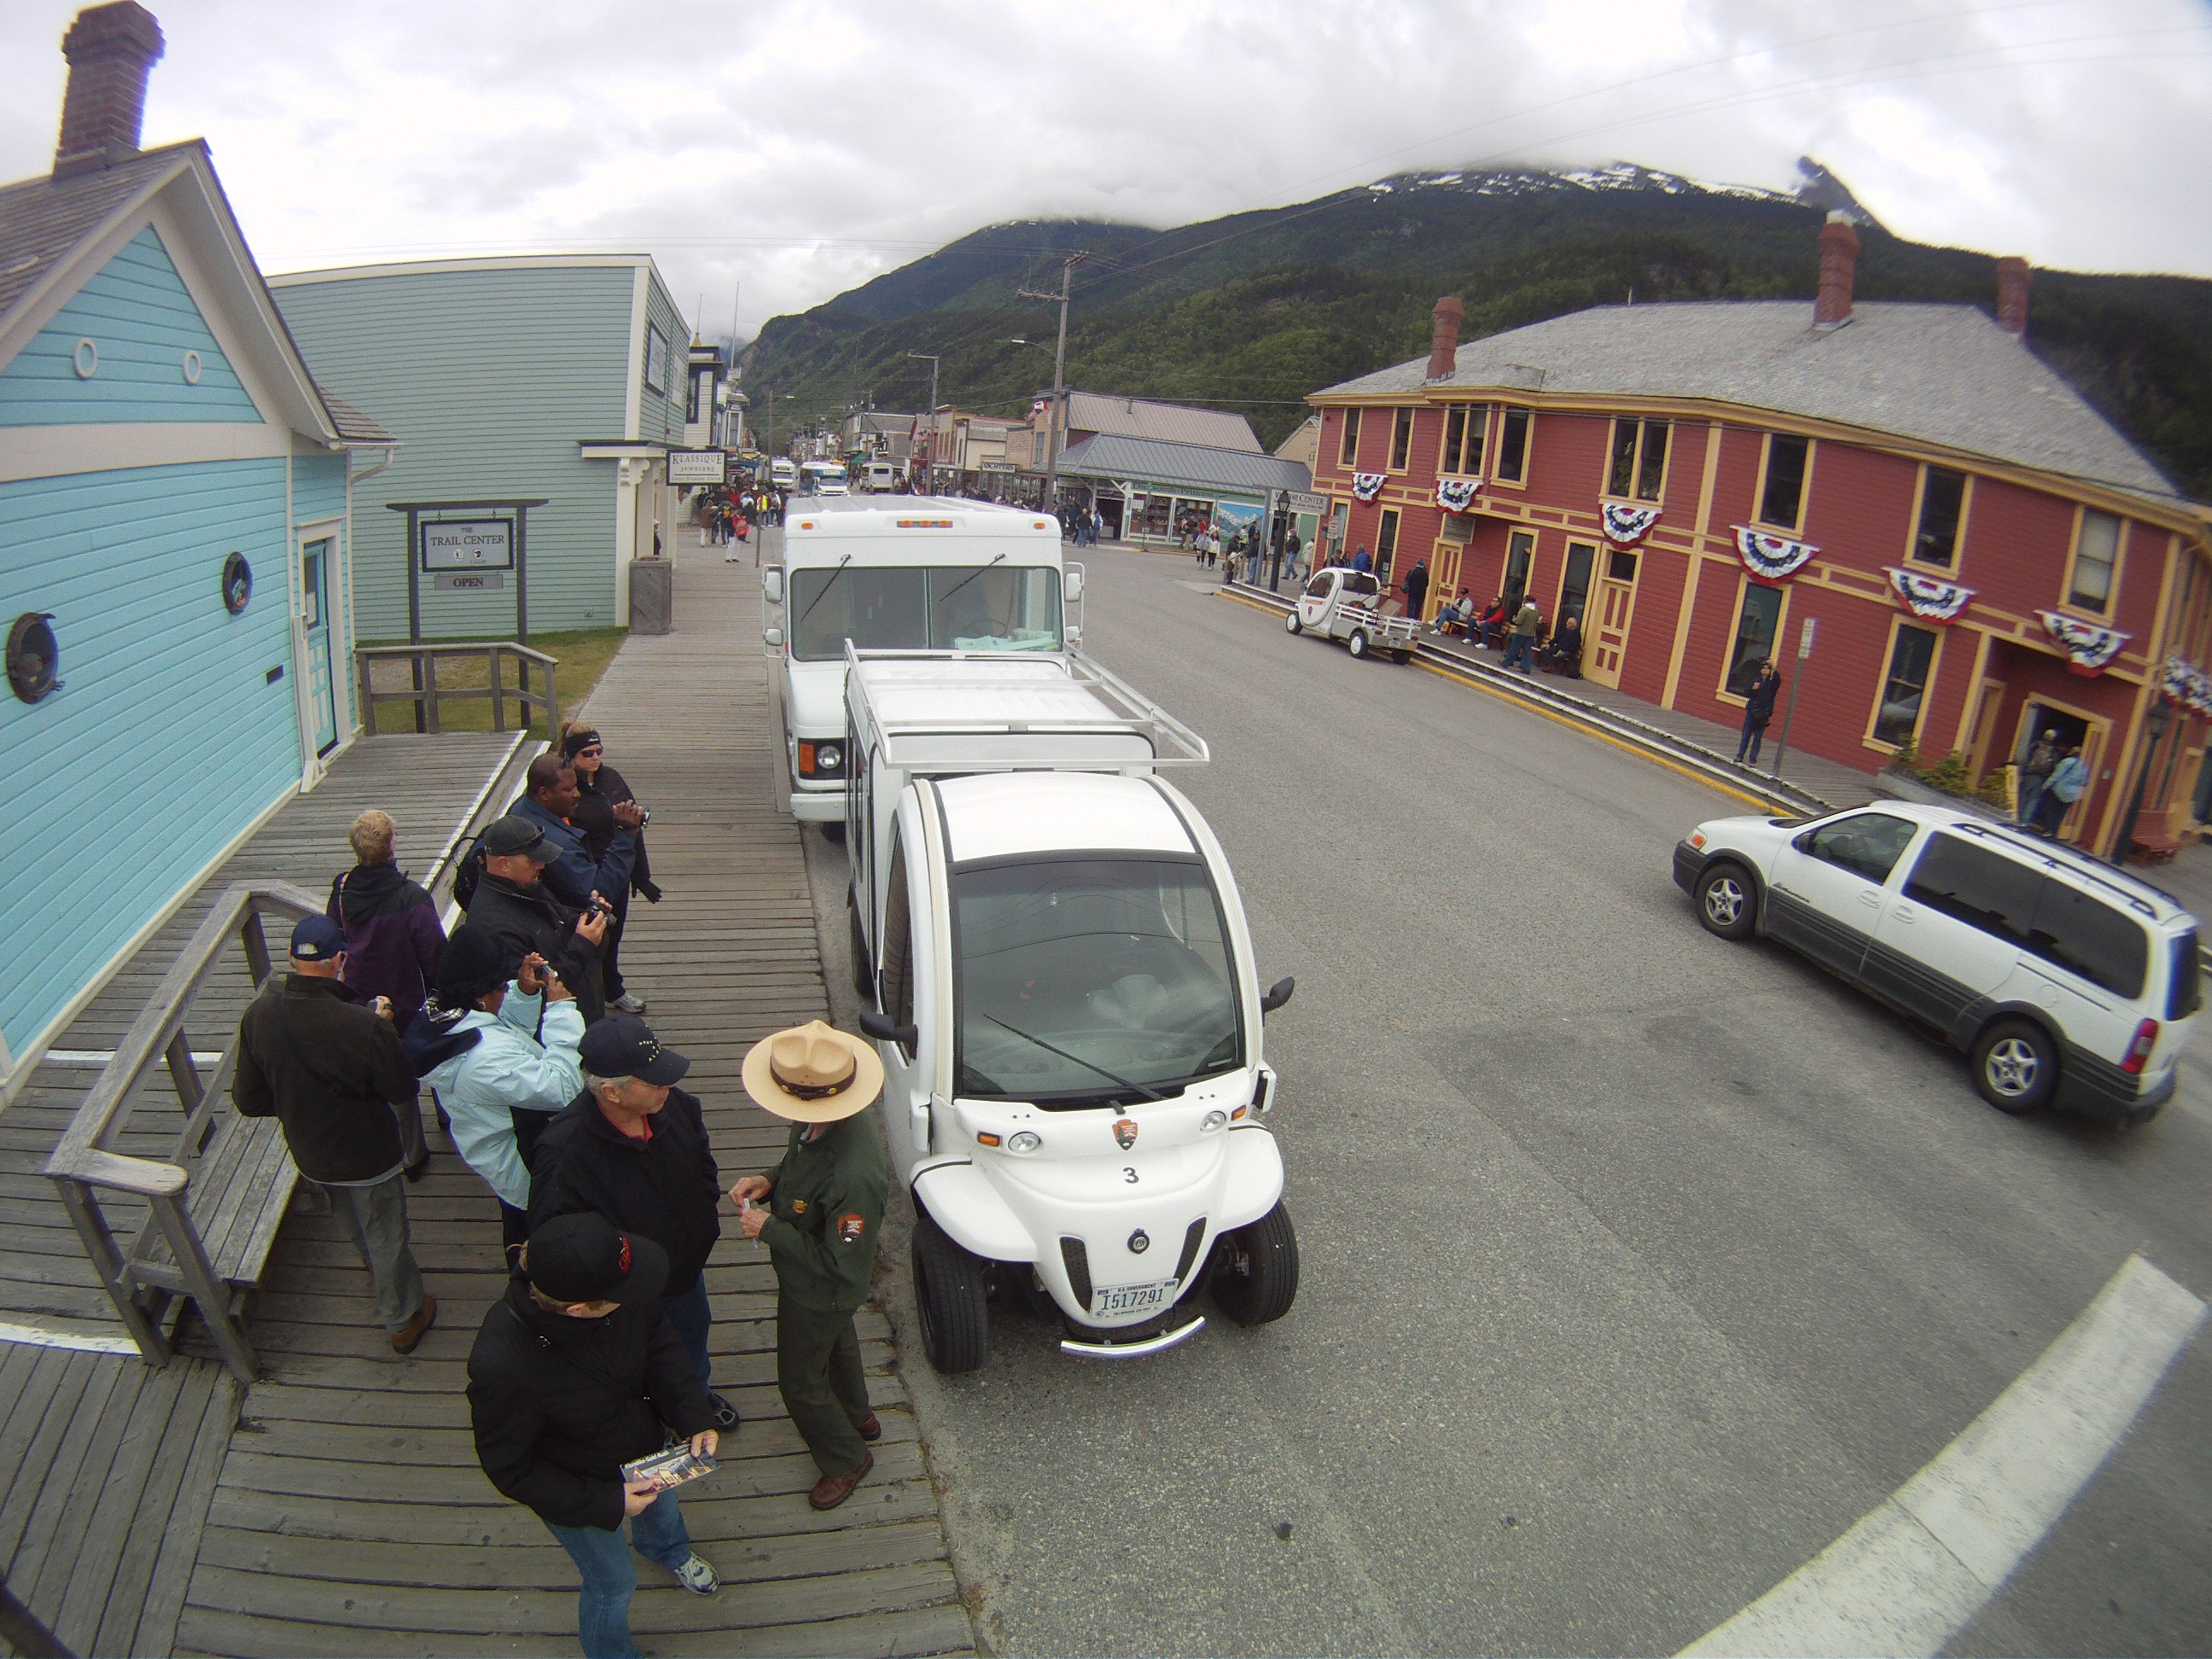 Electric Vehivles Parked in Skagway, AK